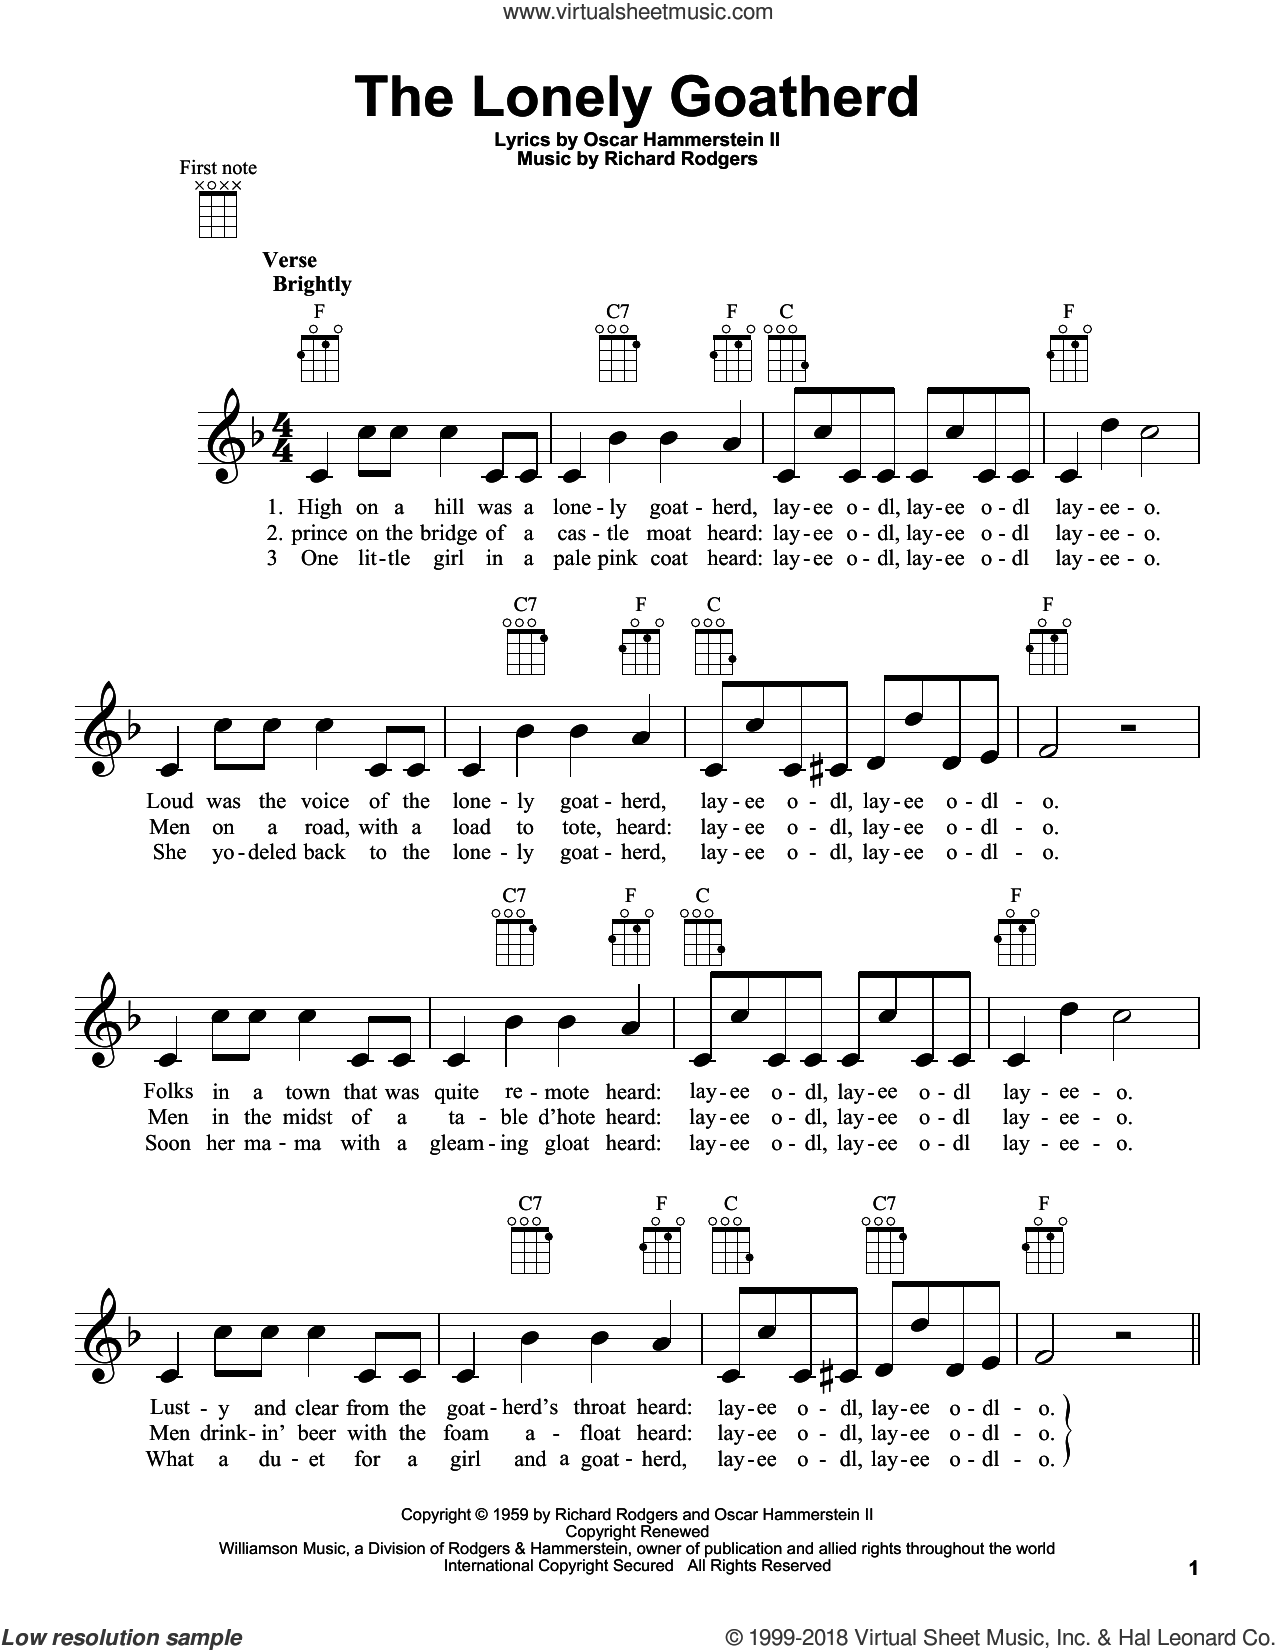 The Lonely Goatherd (from The Sound of Music) sheet music for ukulele by Rodgers & Hammerstein, Oscar II Hammerstein and Richard Rodgers, intermediate skill level